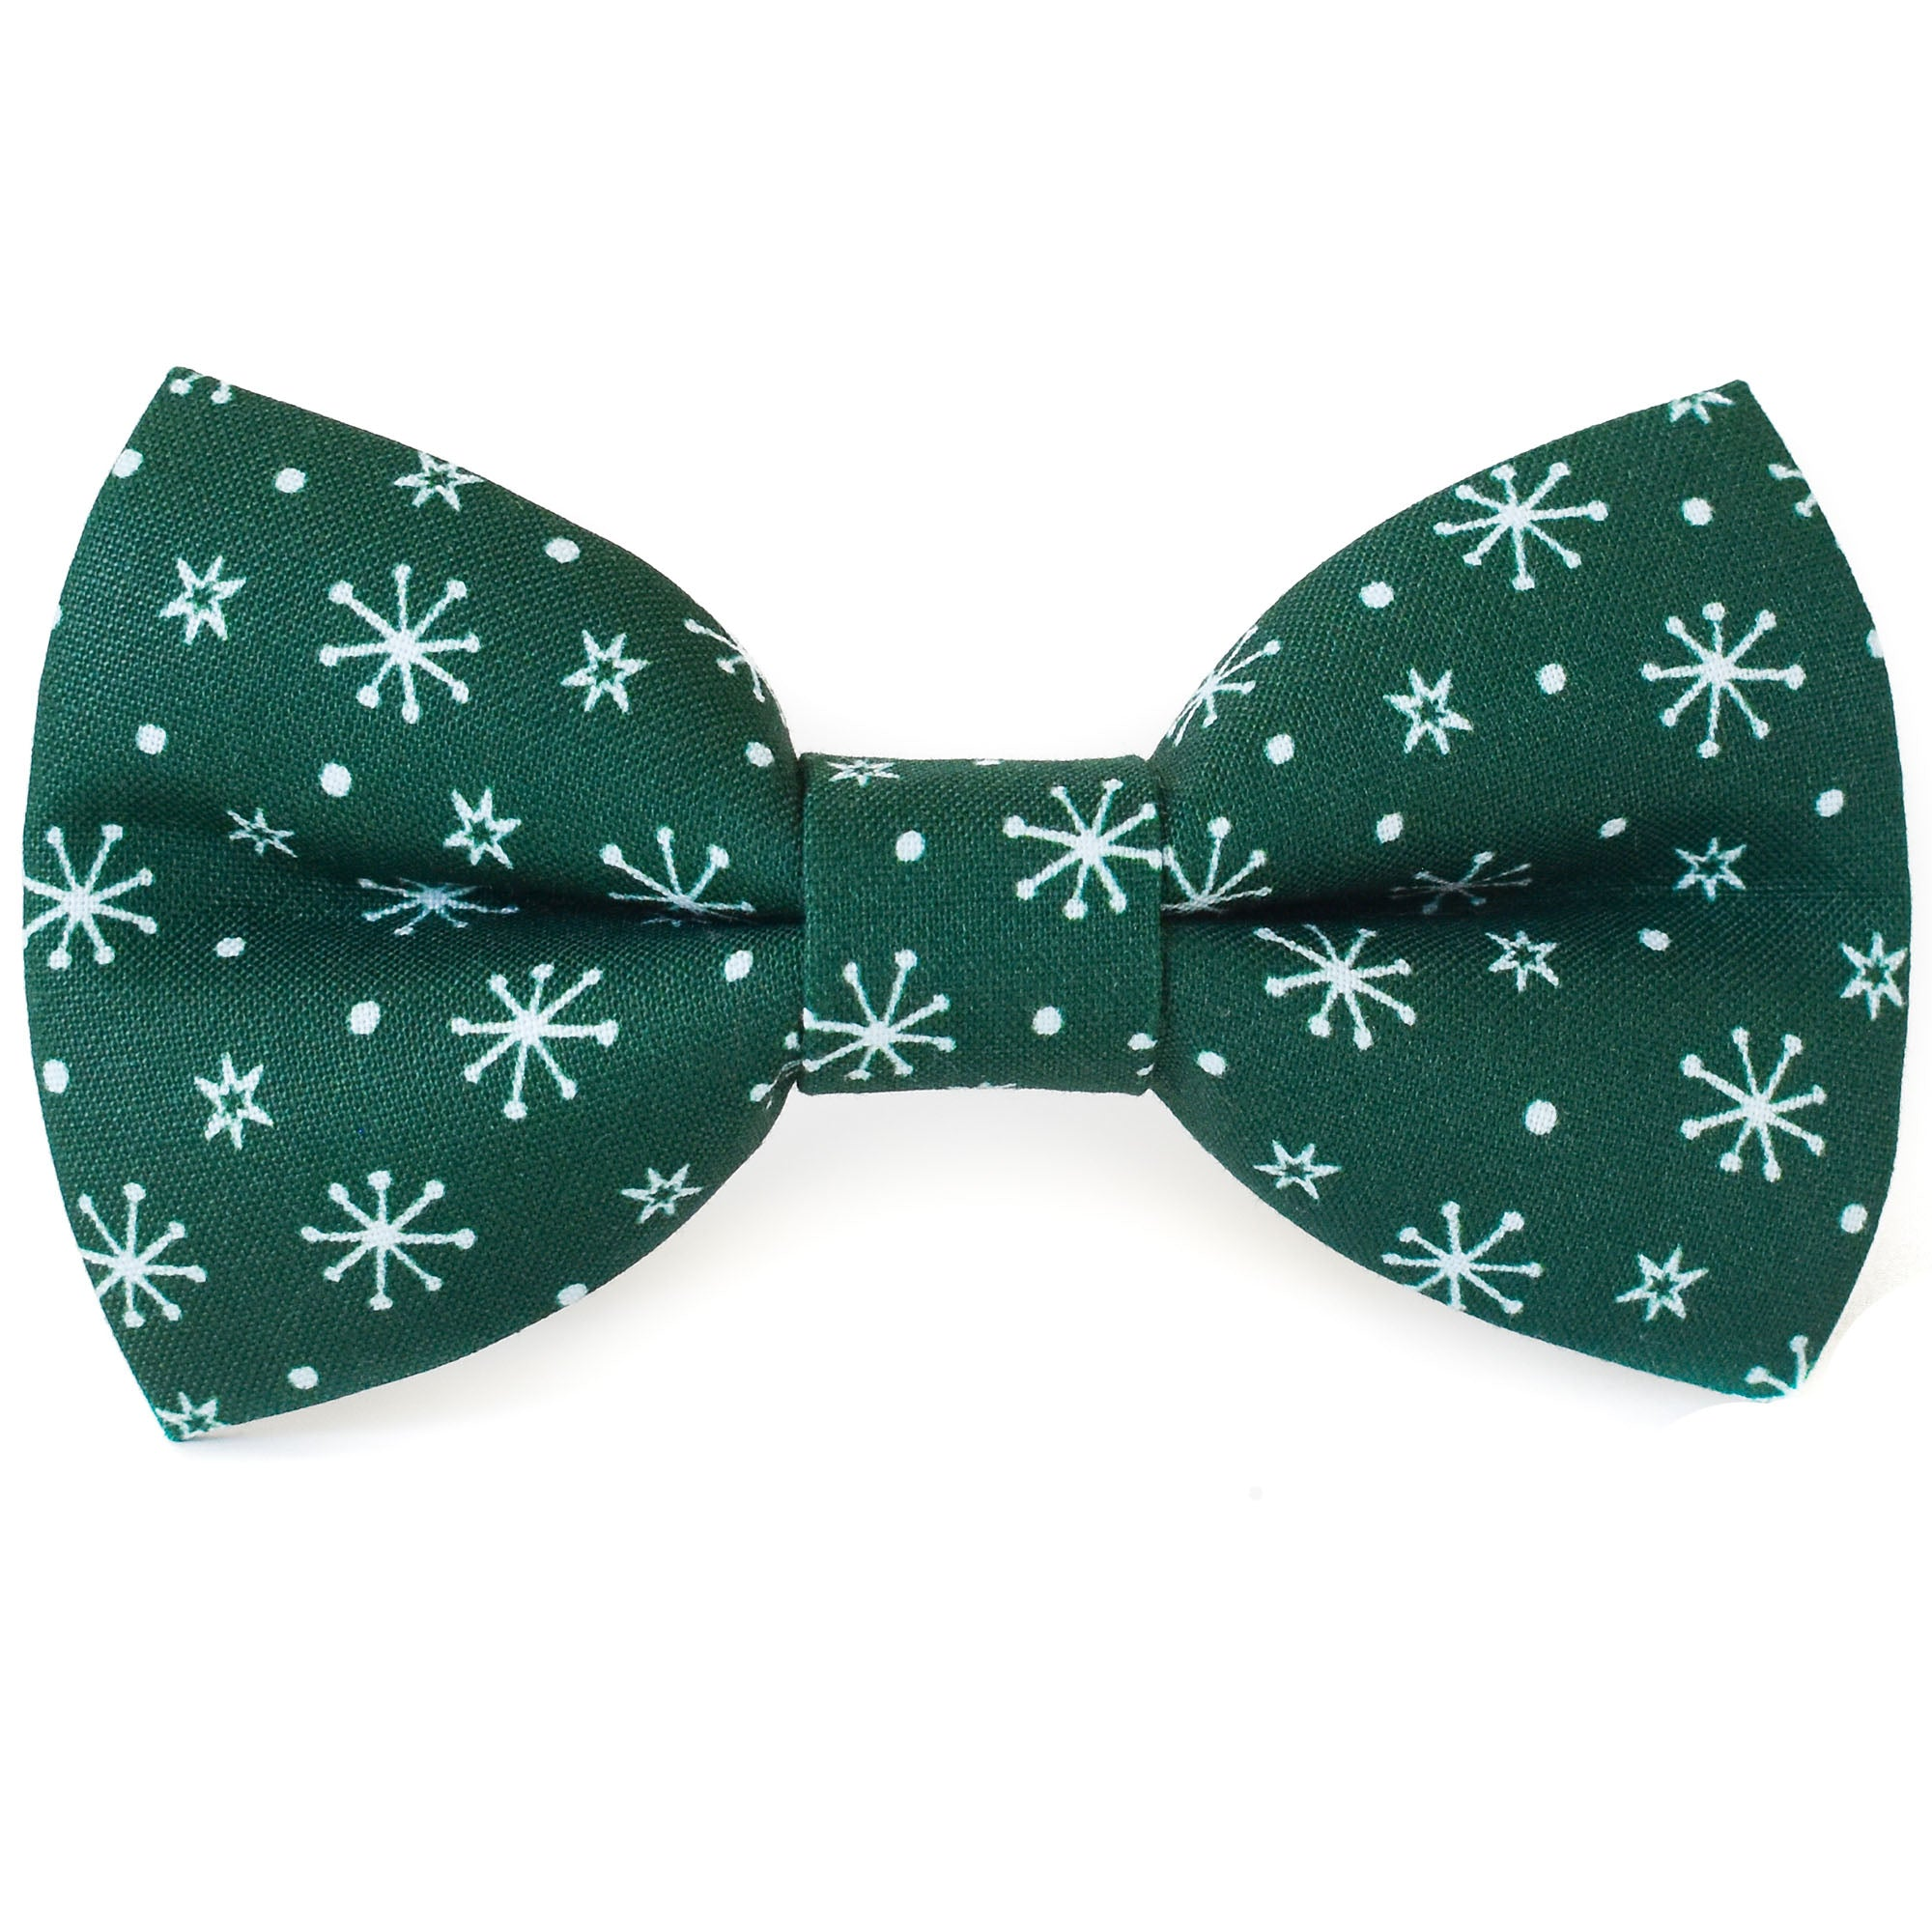 Evergreen Snowflakes Dog Bow Tie